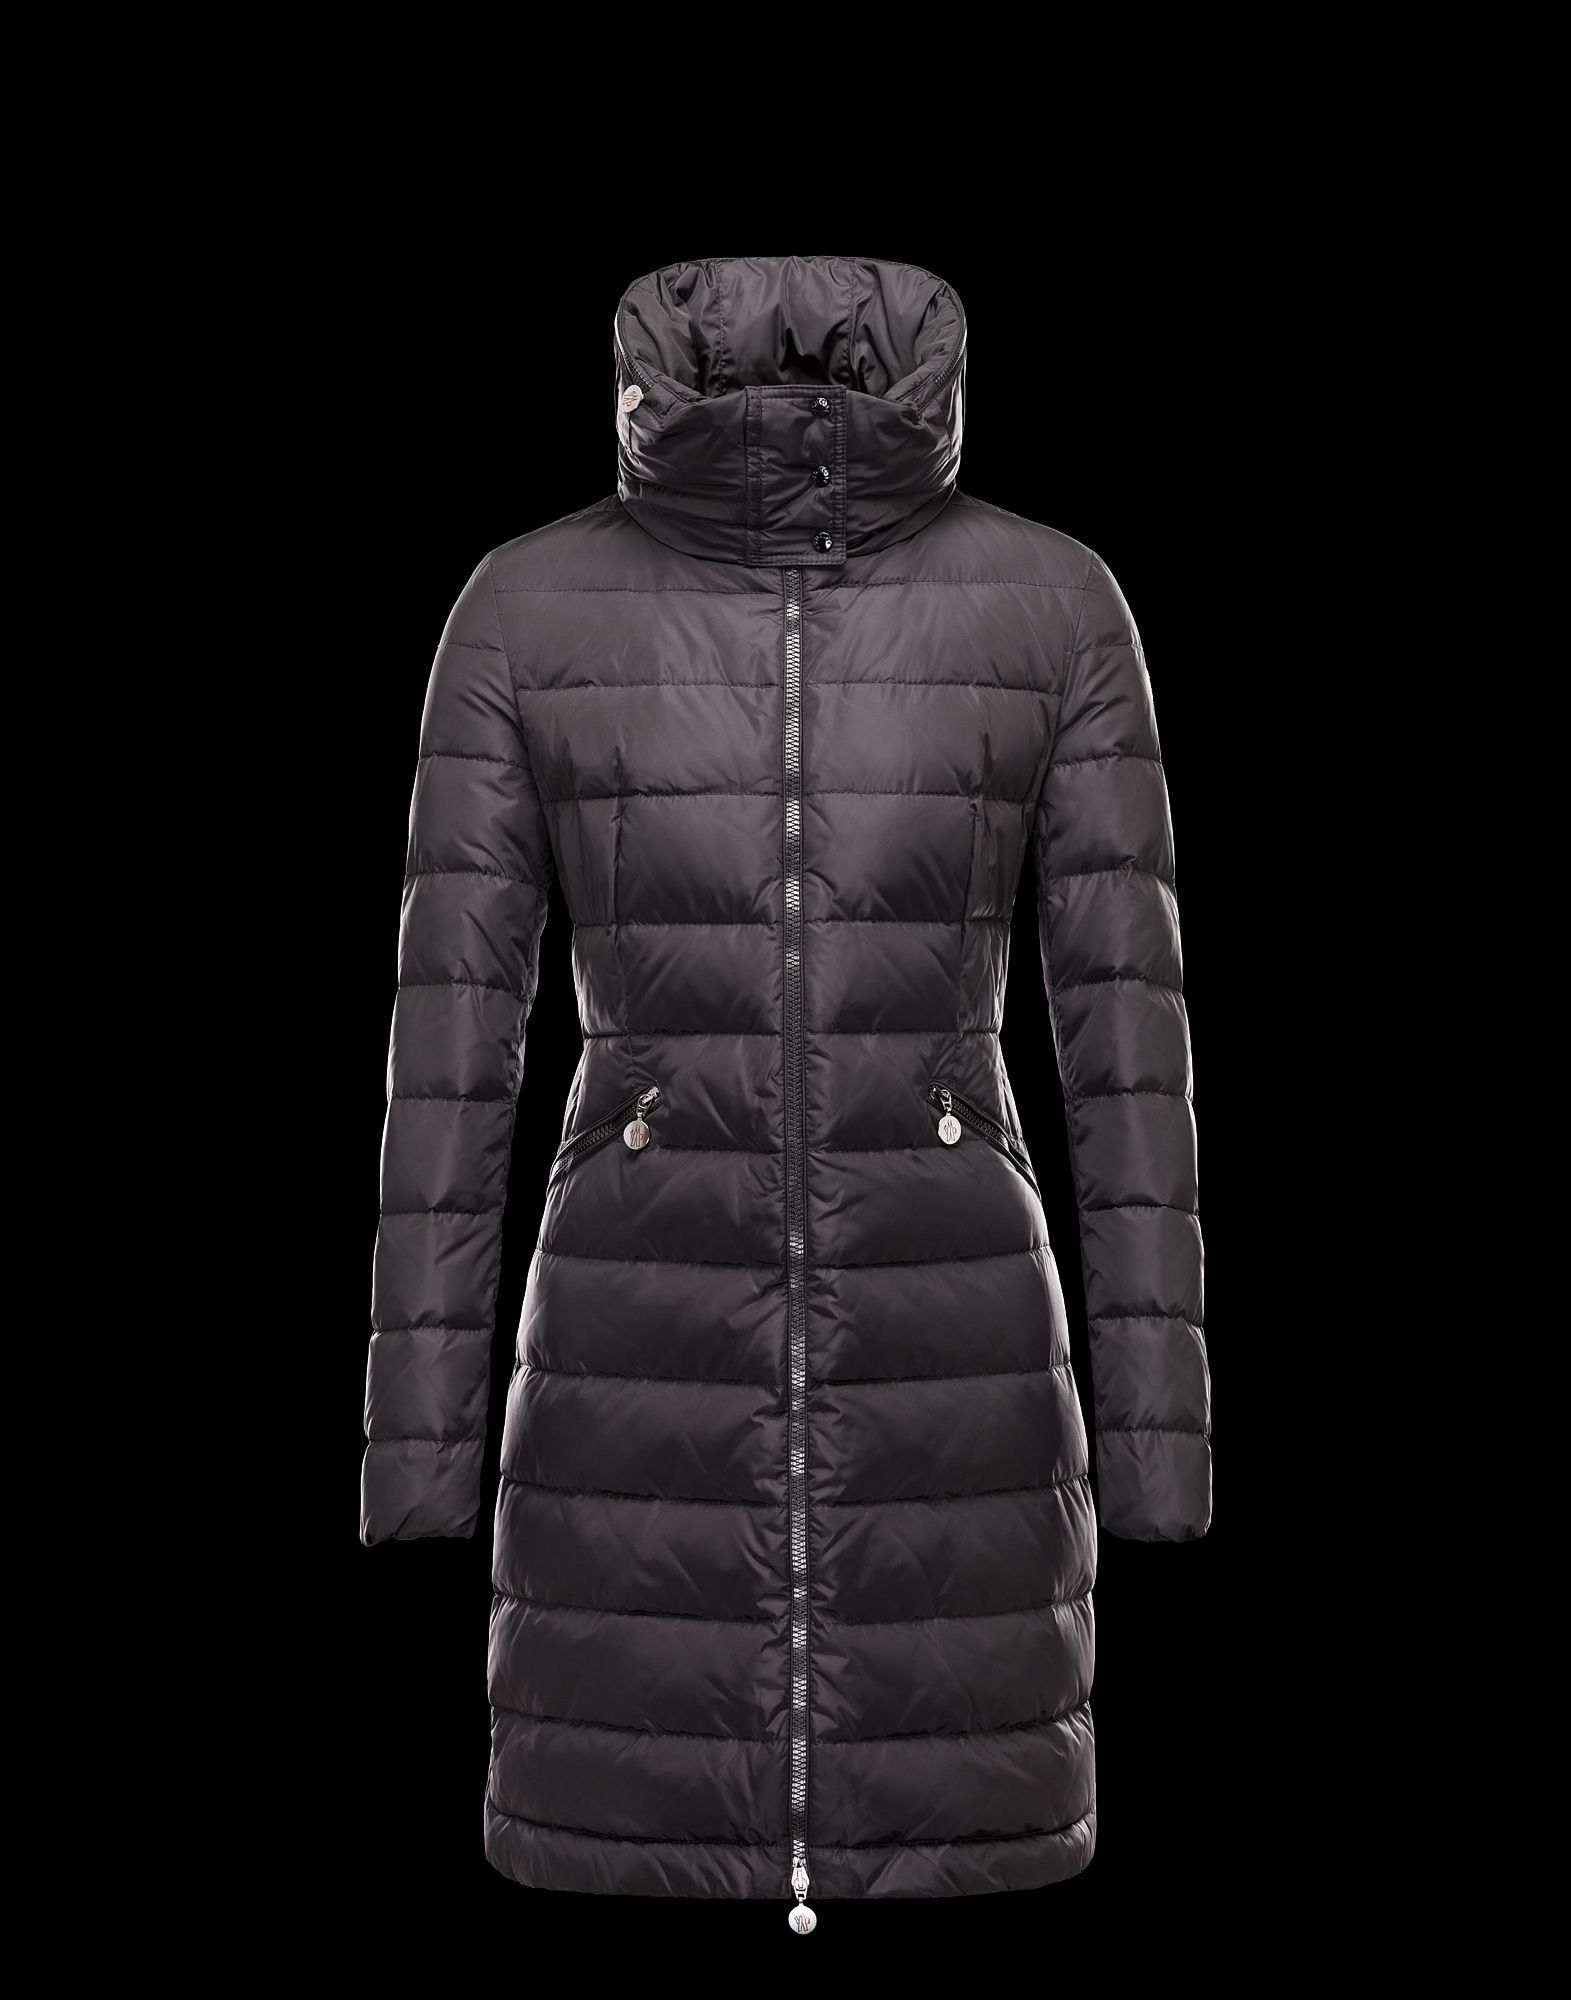 1ba864a3339d Women Moncler   Online the New Moncler Collection. Discover the  Autumn-Winter Trends ! Free delivery   Free returns!£1,340.00 £339.00 Save   75% off 339 ...